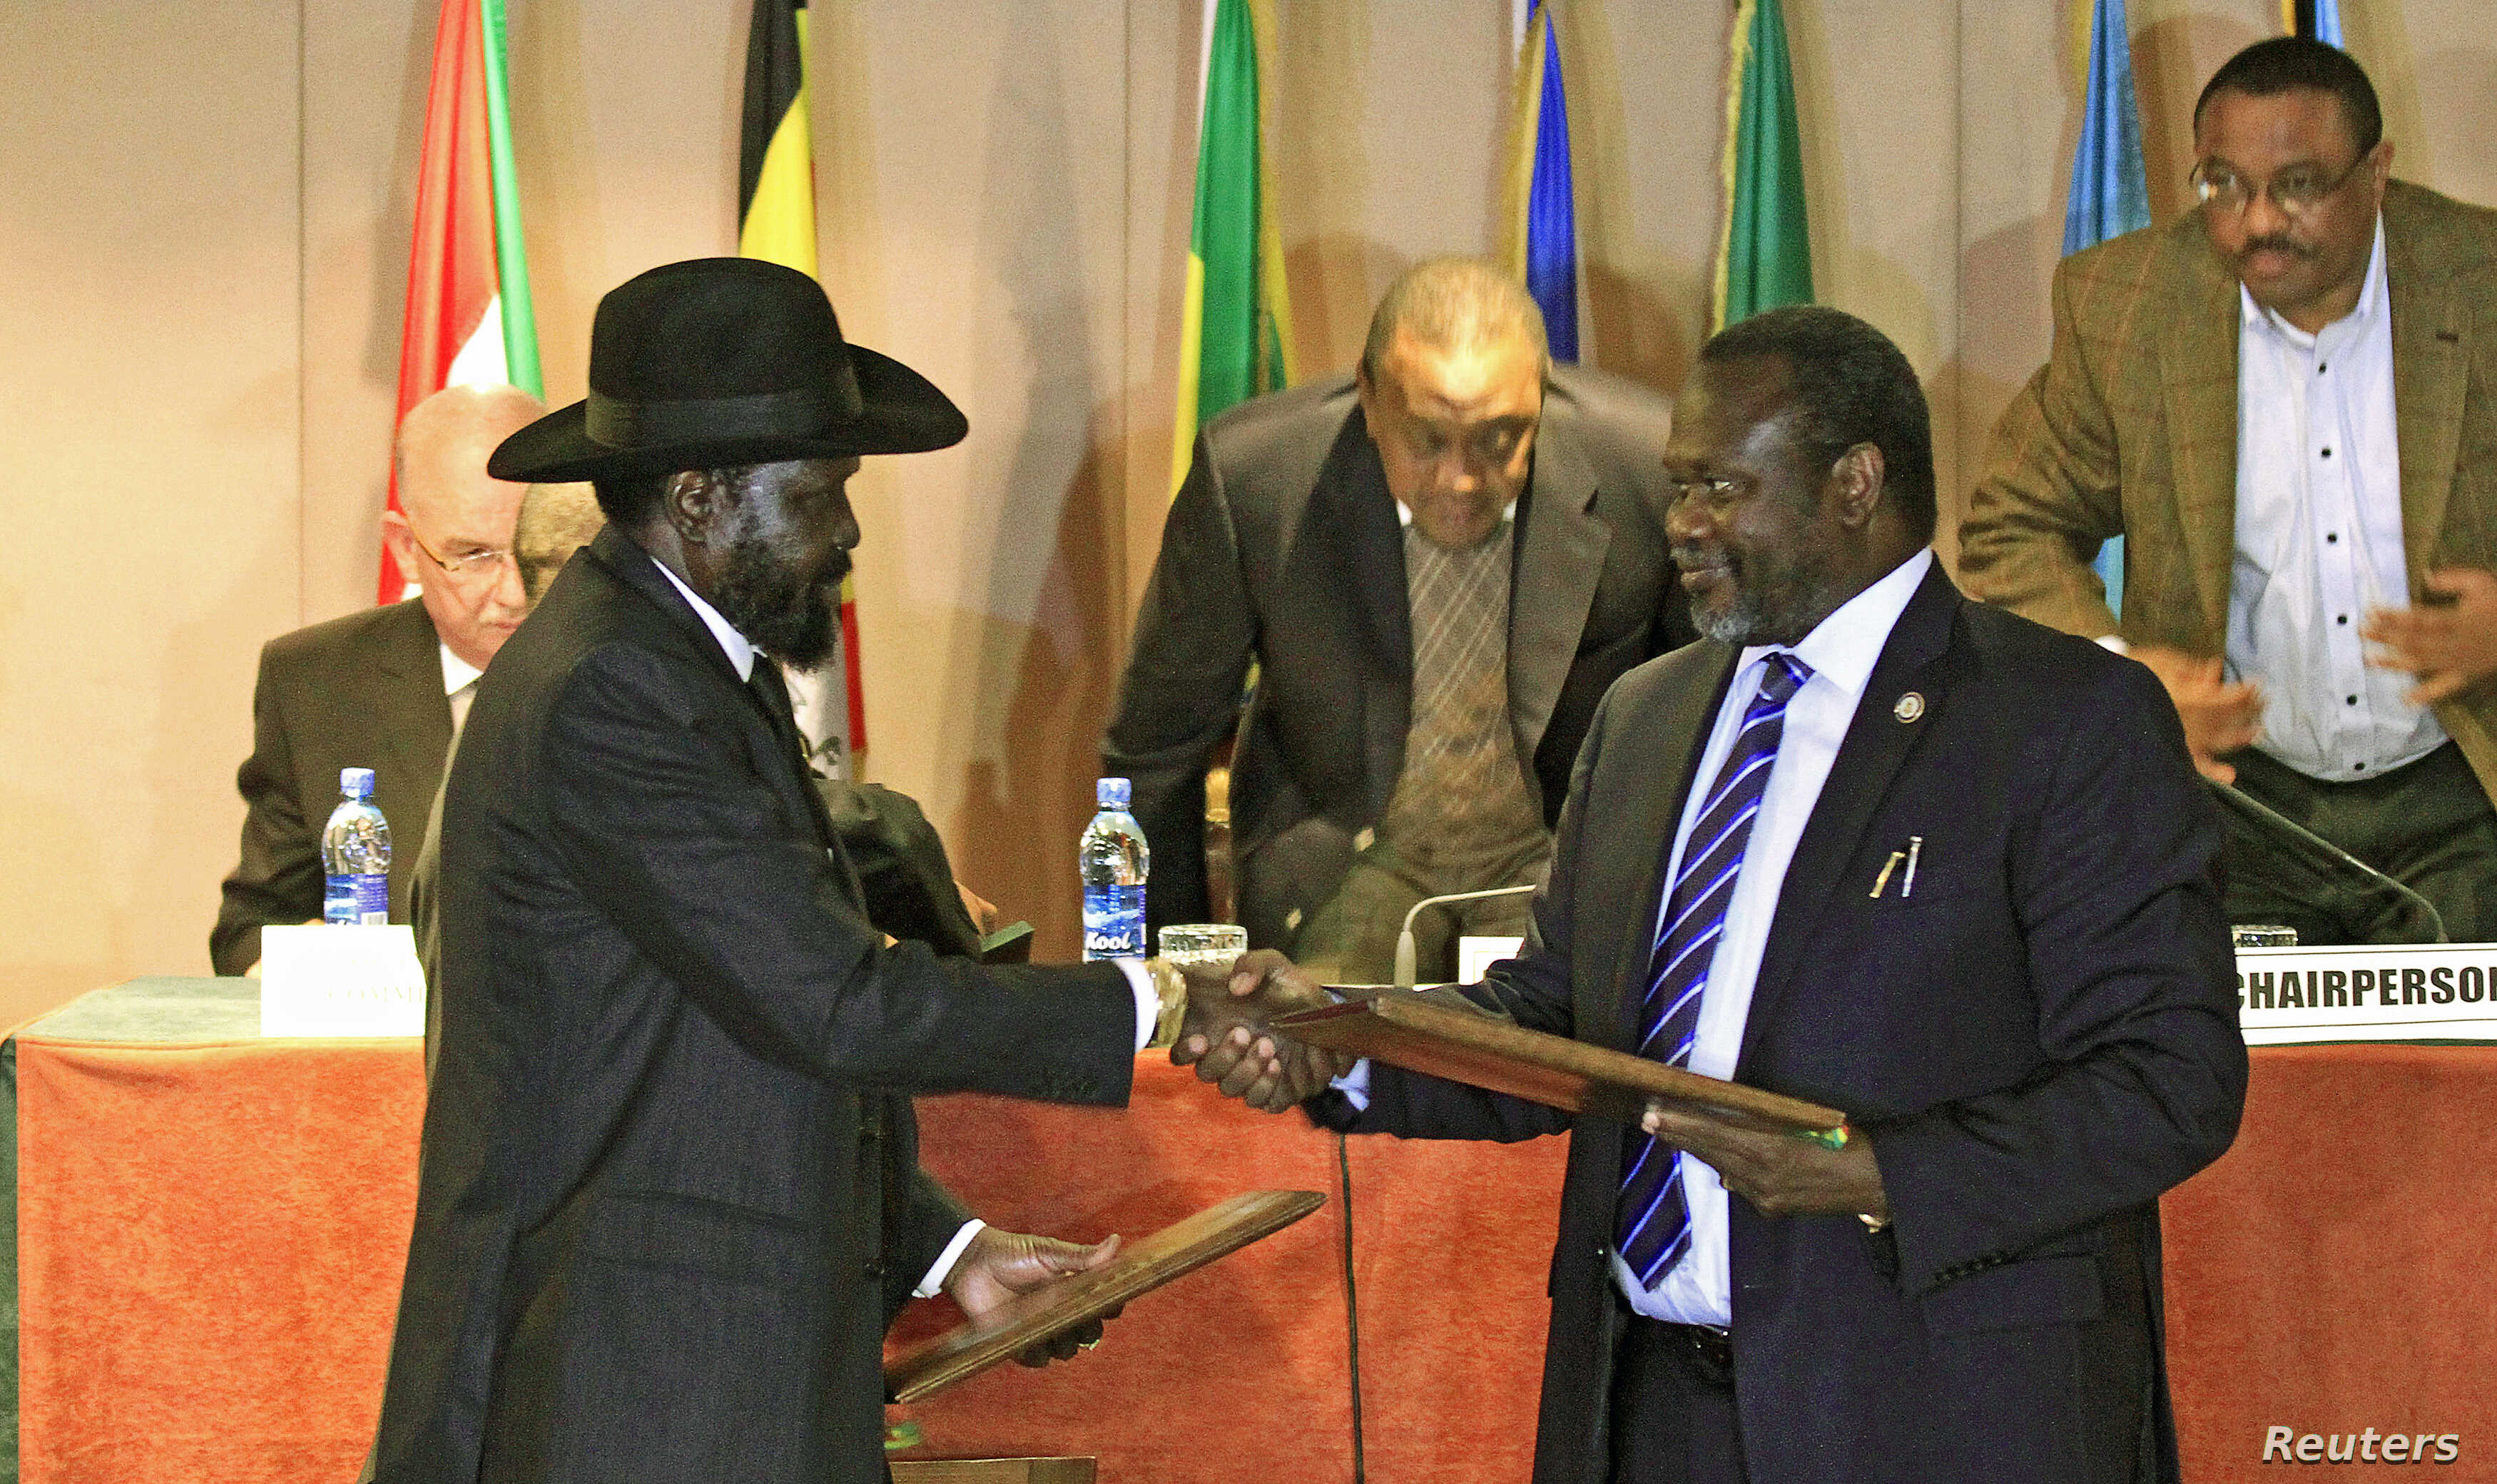 South Sudan's President Salva Kiir (front L) and South Sudan's rebel commander Riek Machar exchange documents after signing a cease-fire agreement during the Inter Governmental Authority on Development (IGAD) Summit on the case of South Sudan in Ethi...